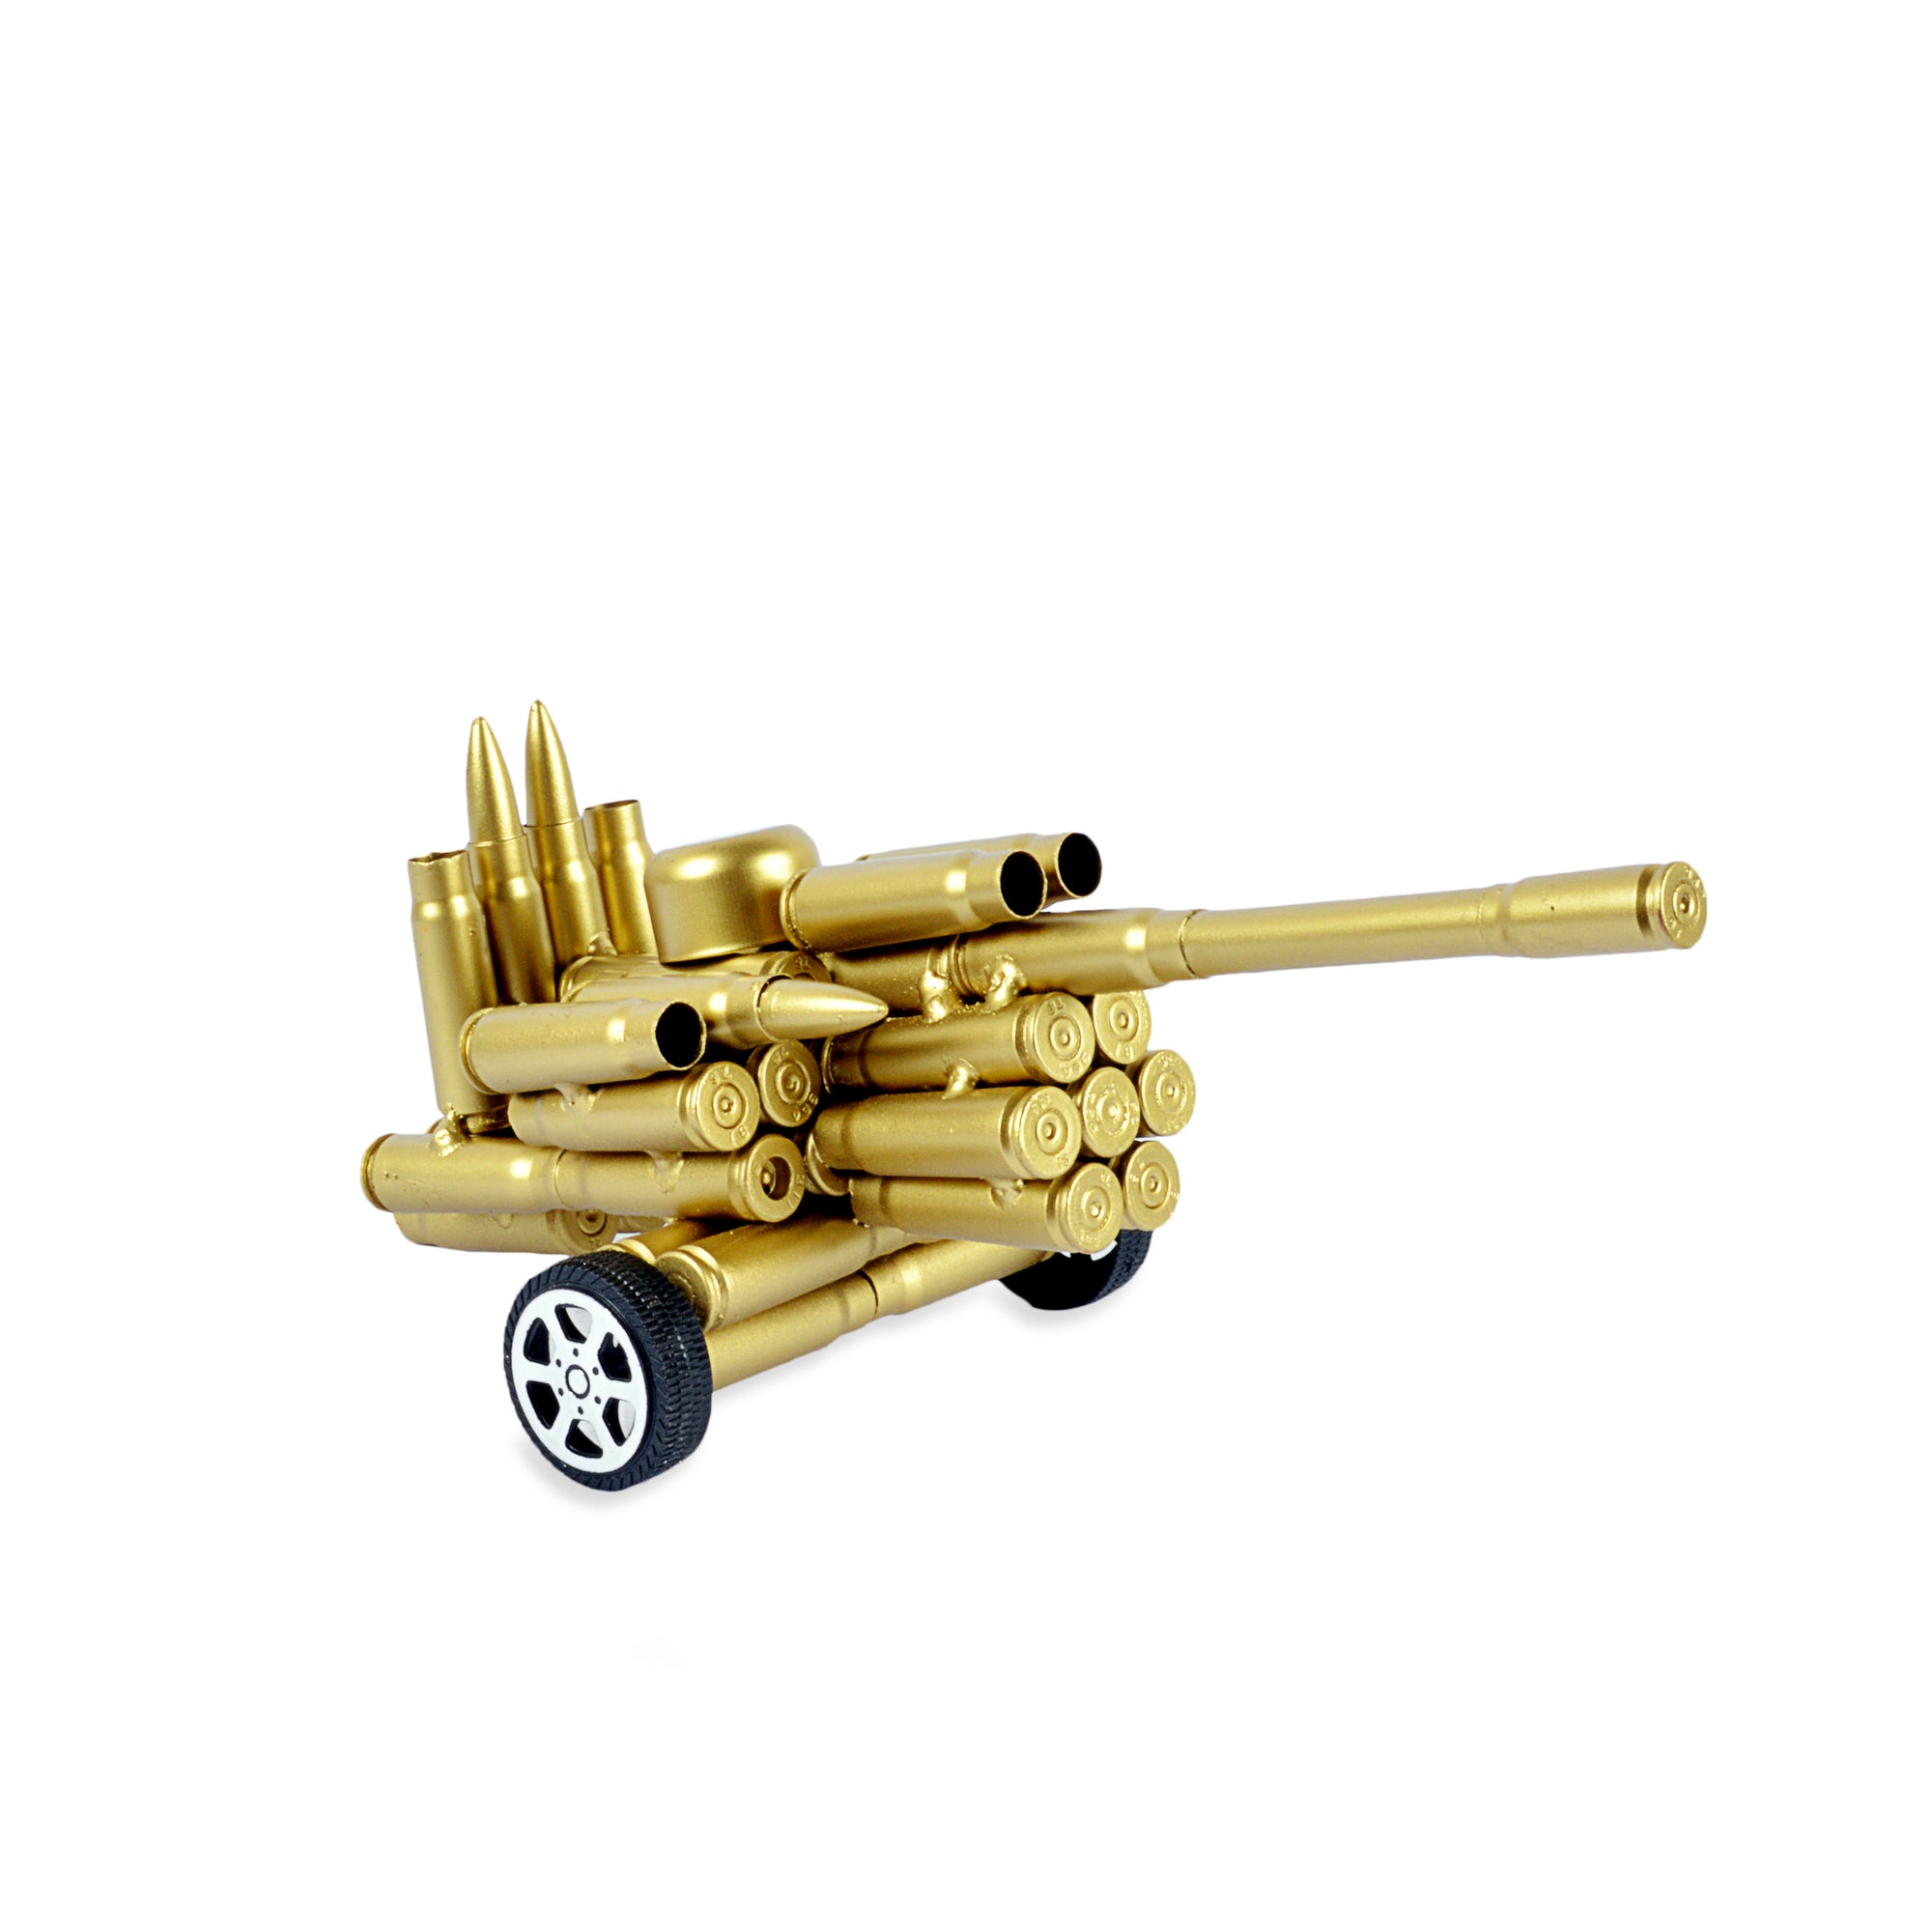 Decorative Anti Aircraft Gun